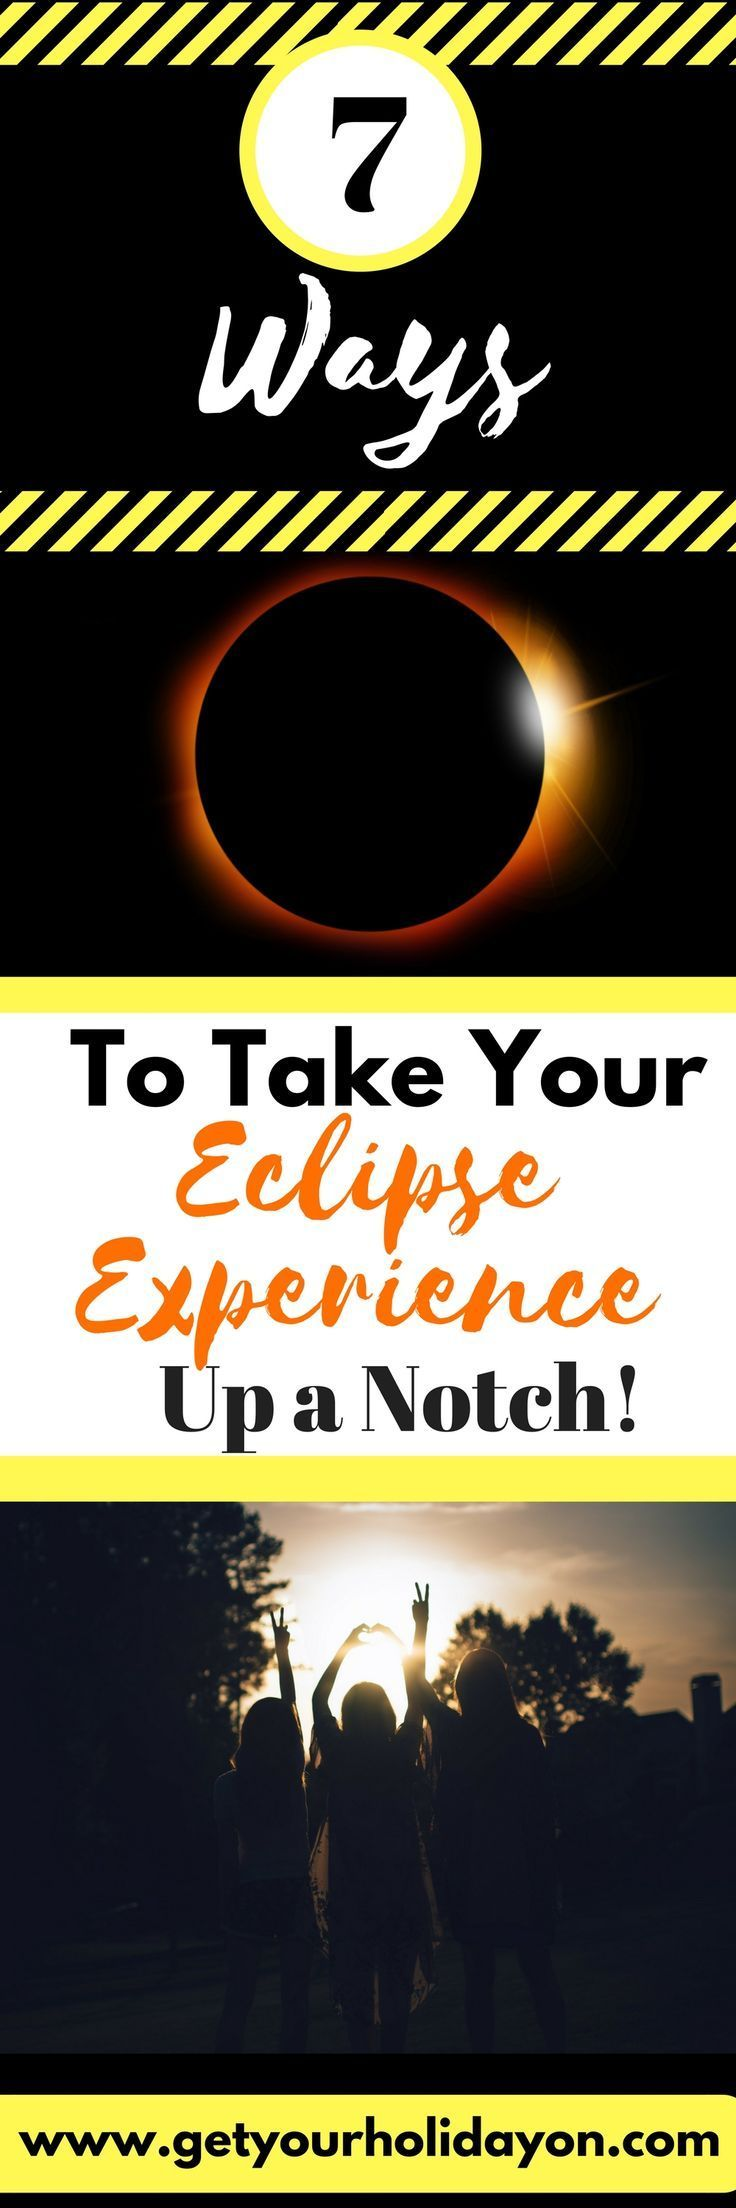 On August 21, 2017, the sun will disappear behind the moon creating what is called a Solar Eclipse. Imagine the moment filled with excitement and extra fun! Check out these ideas to make your Eclipse Experience Extra fun!